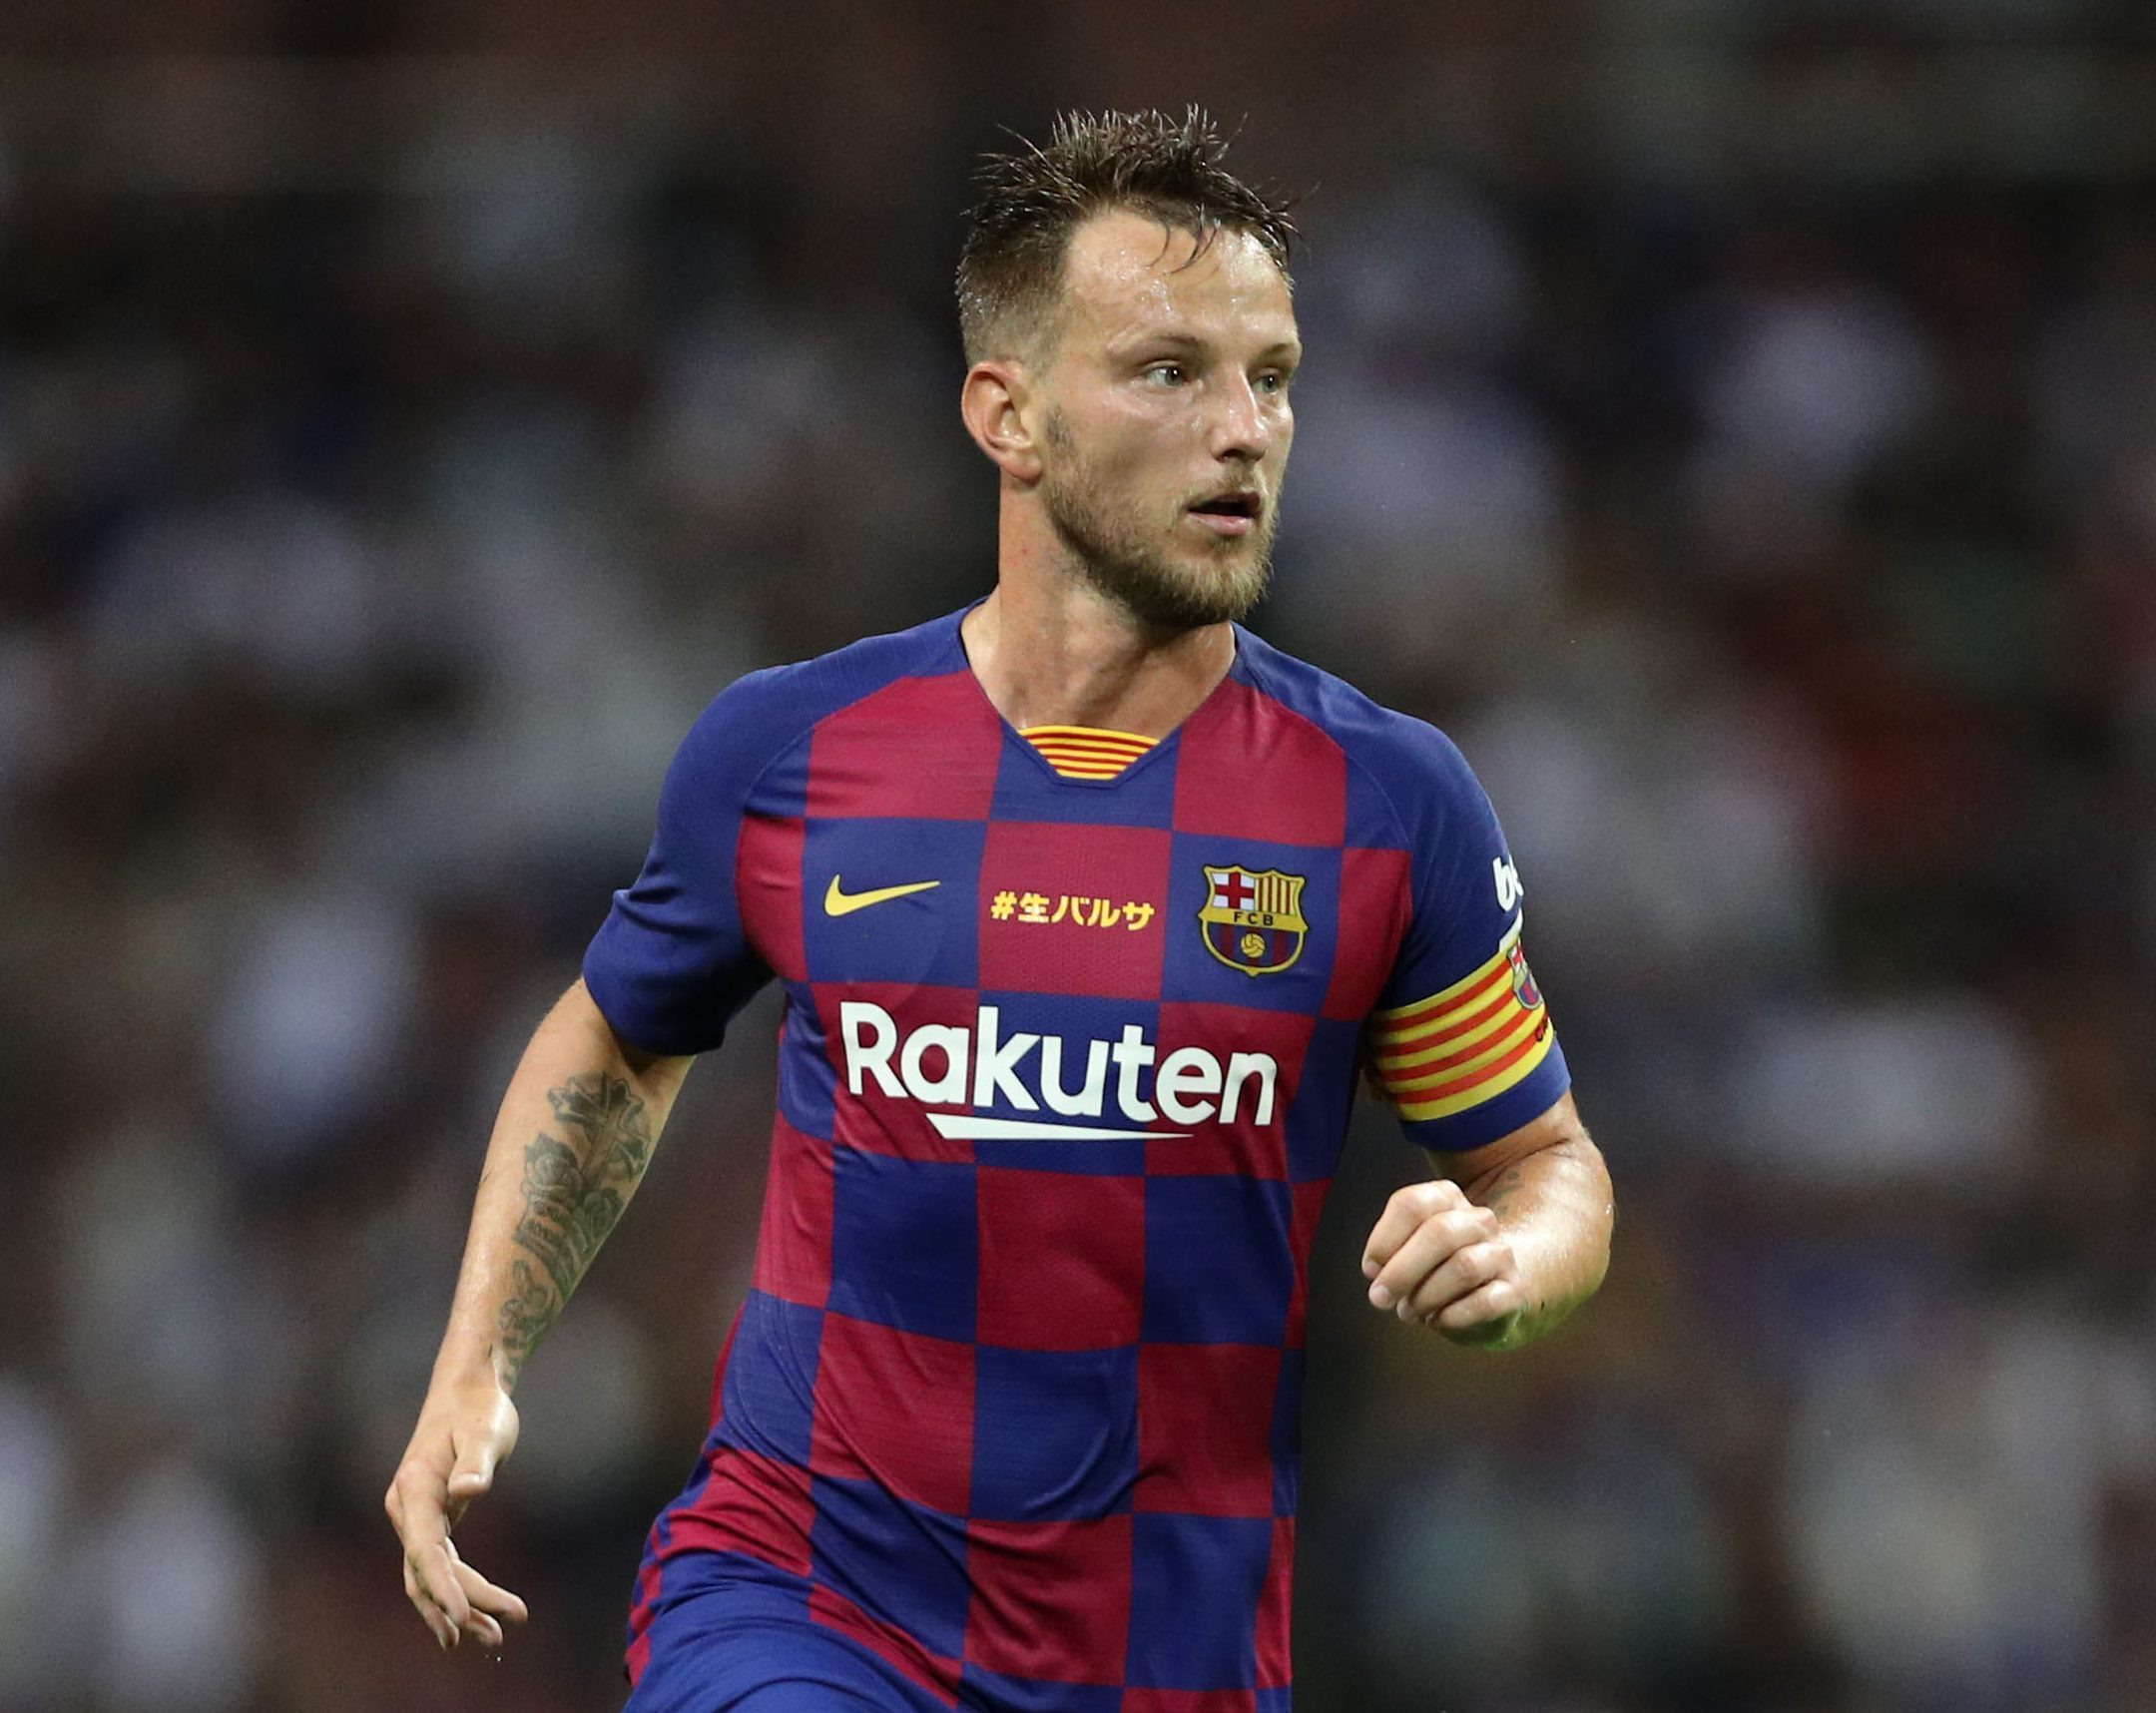 Man Utd receive Ivan Rakitic transfer boost as Croatian issues Barcelona quit threat - Bóng Đá